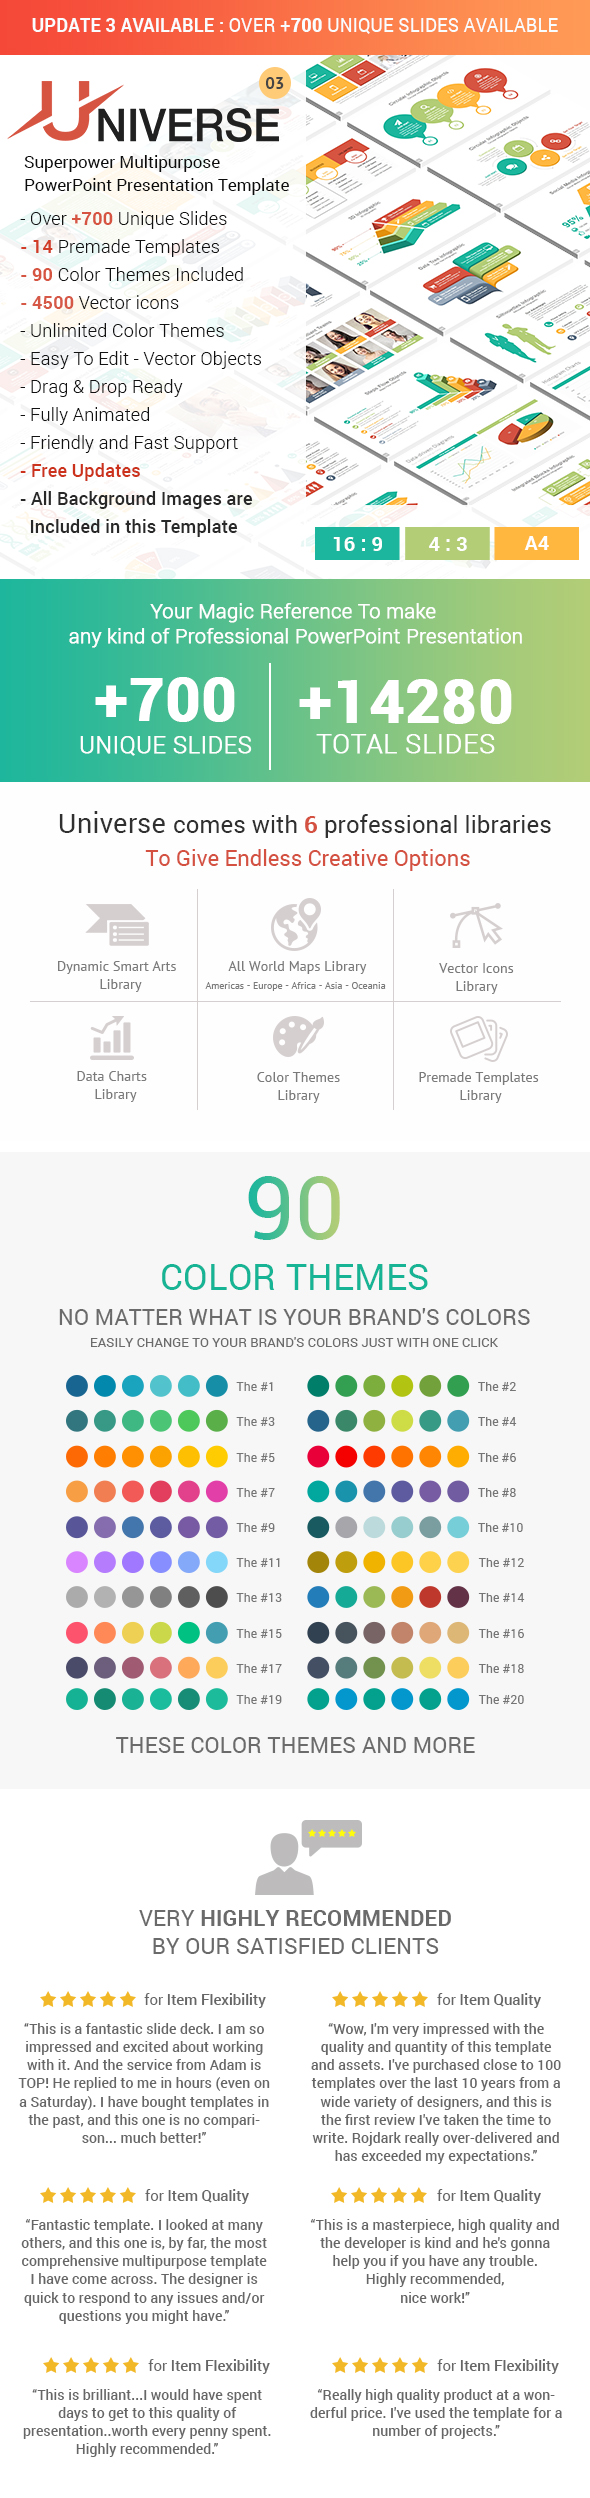 Animated Graphics, Designs & Templates from GraphicRiver